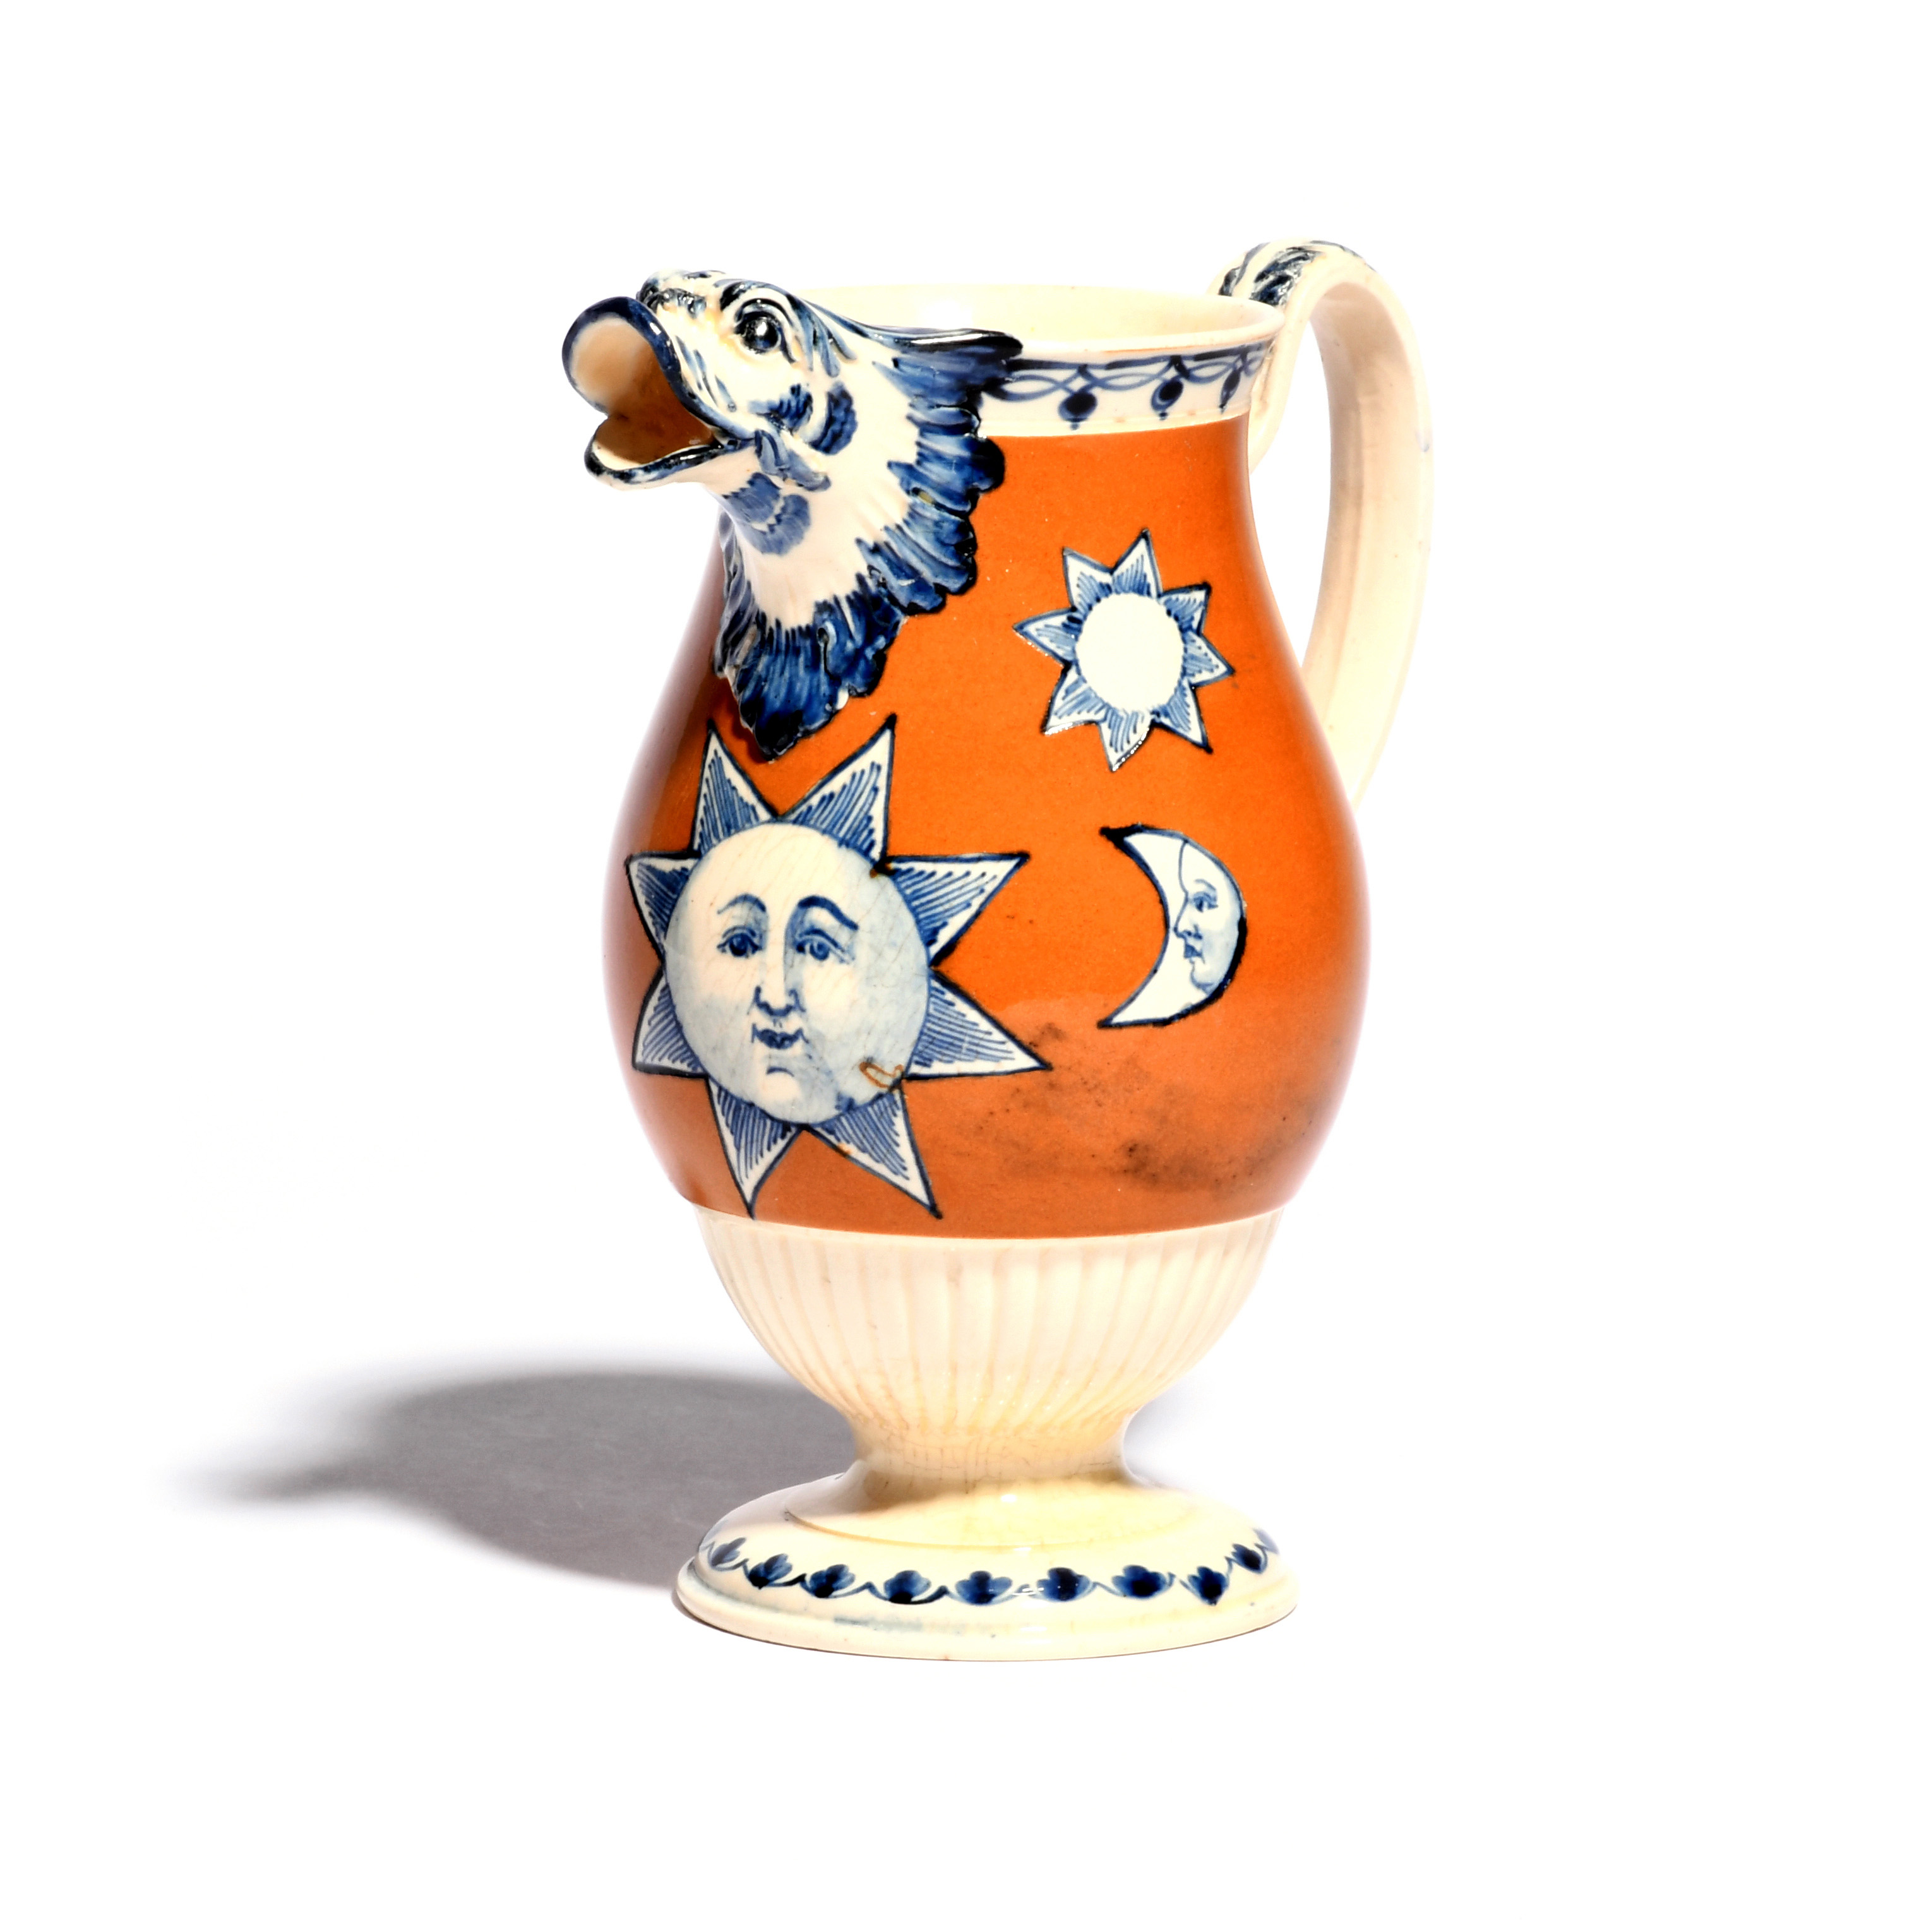 An unusual creamware jug c.1800, the baluster body painted with Masonic sun and moon symbols in blue